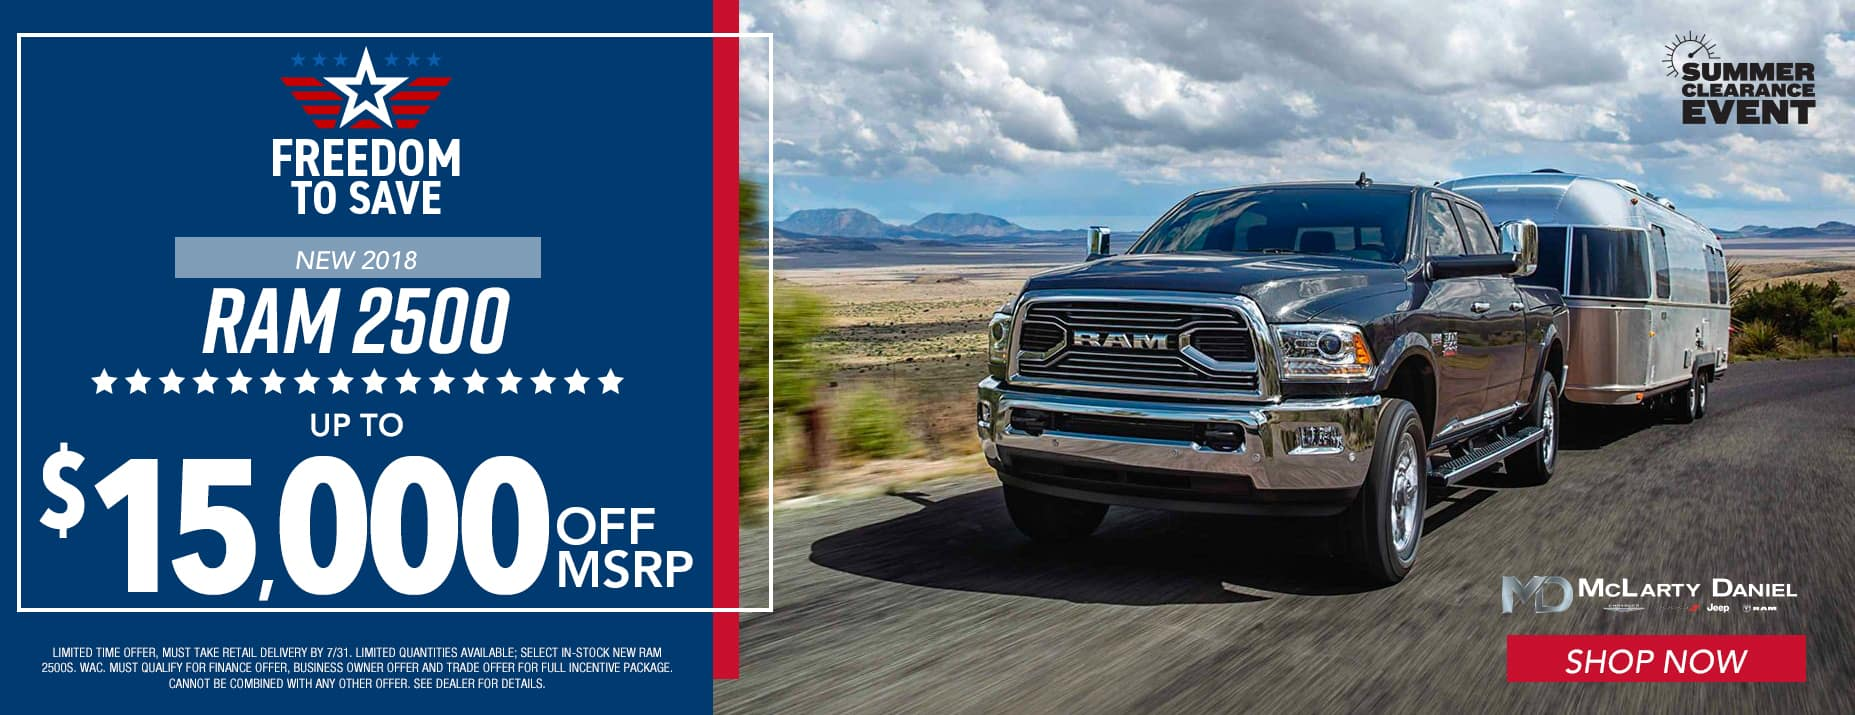 2018 2500	10% Off MSRP PLUS 0% APR For 72 Months